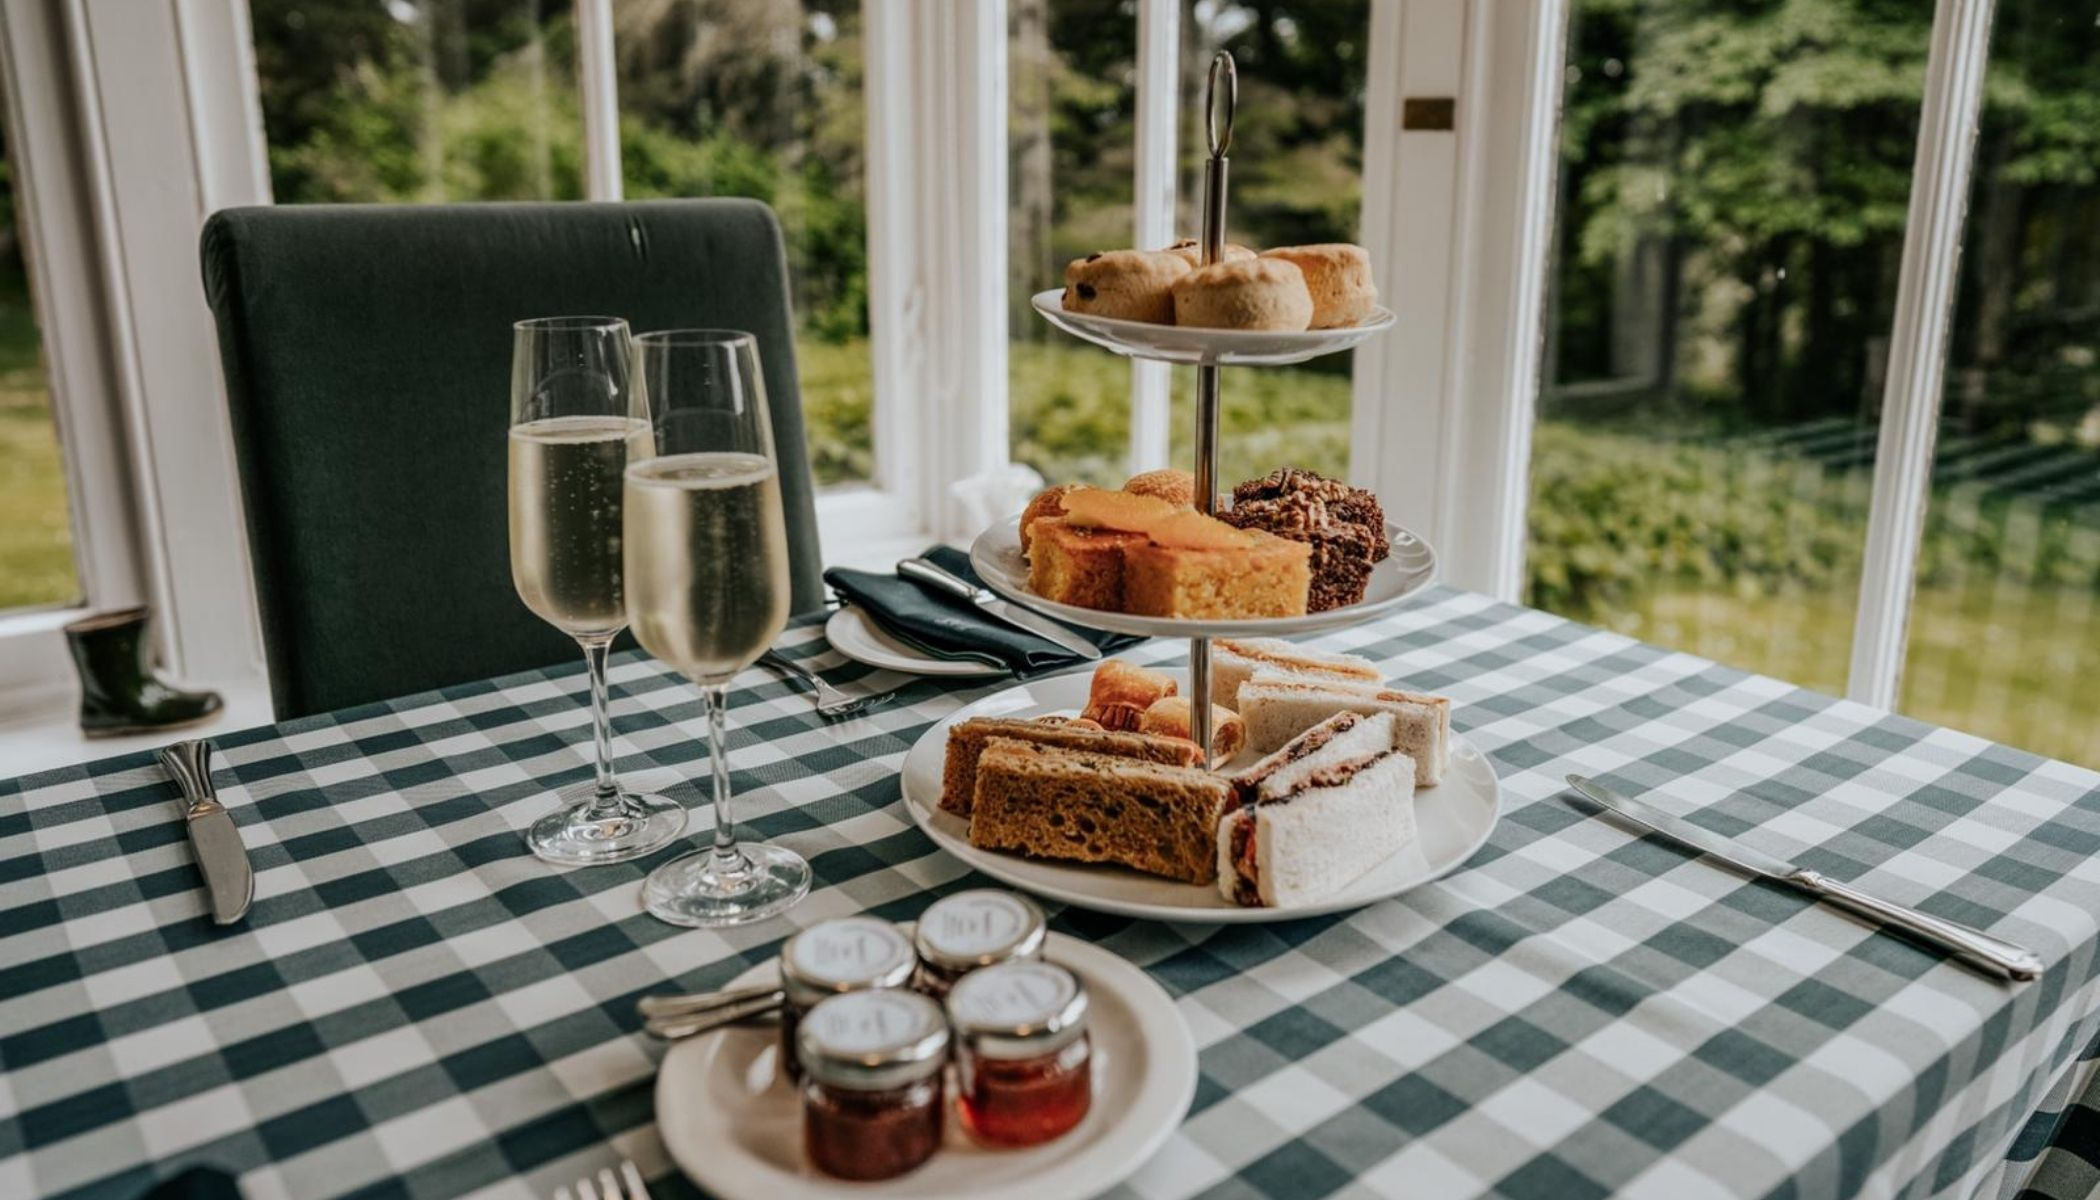 Afternoon Tea at Forss House